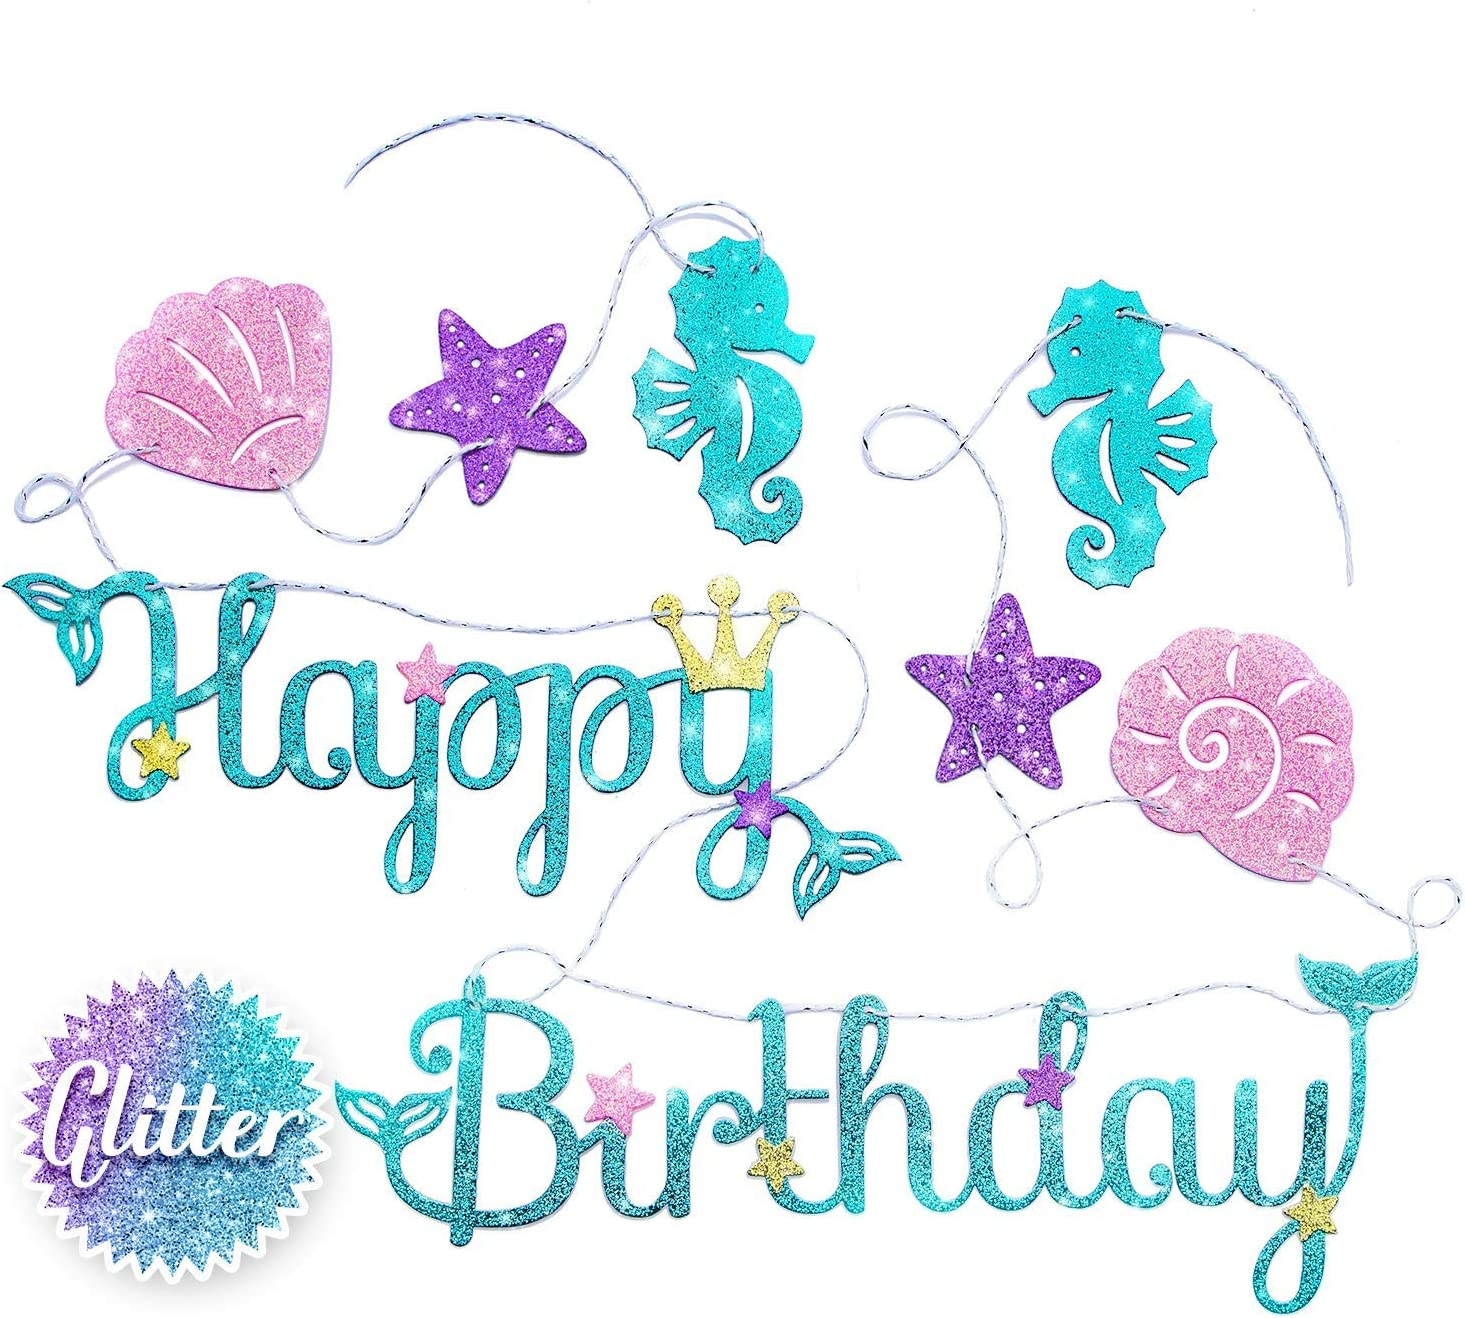 Amazon Com Mermaid Happy Birthday Banner Mermaid Party Supplies Decorations Premium Under The Sea Mermaid Birthday Party Decor Theme New For 2020 Cute Sparkle Glitter And Pre Assembled Home Kitchen